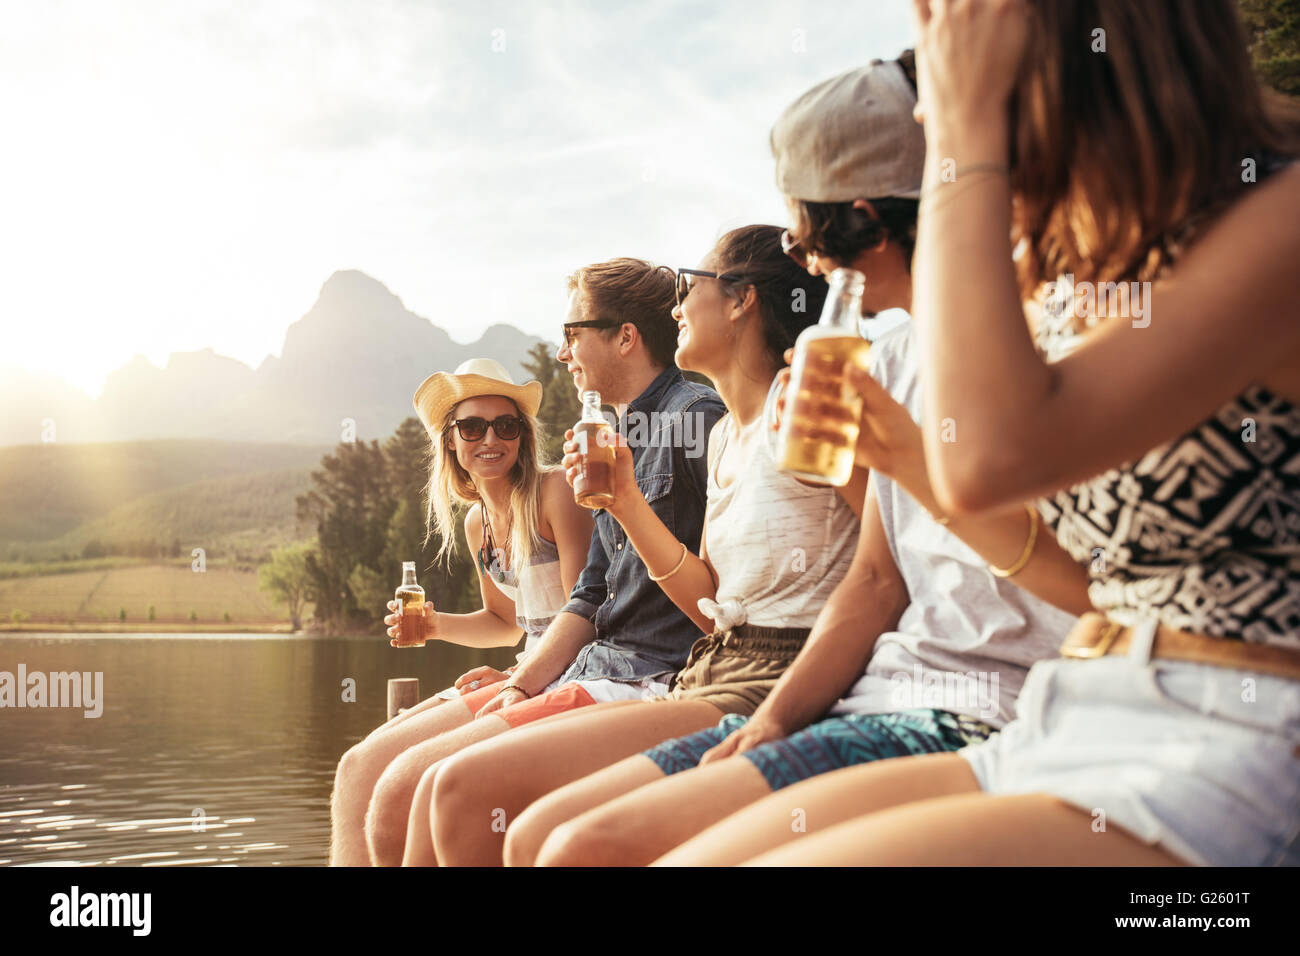 Portrait of young men and woman sitting on jetty with beers. Young men and woman enjoying a day at the lake. - Stock Image